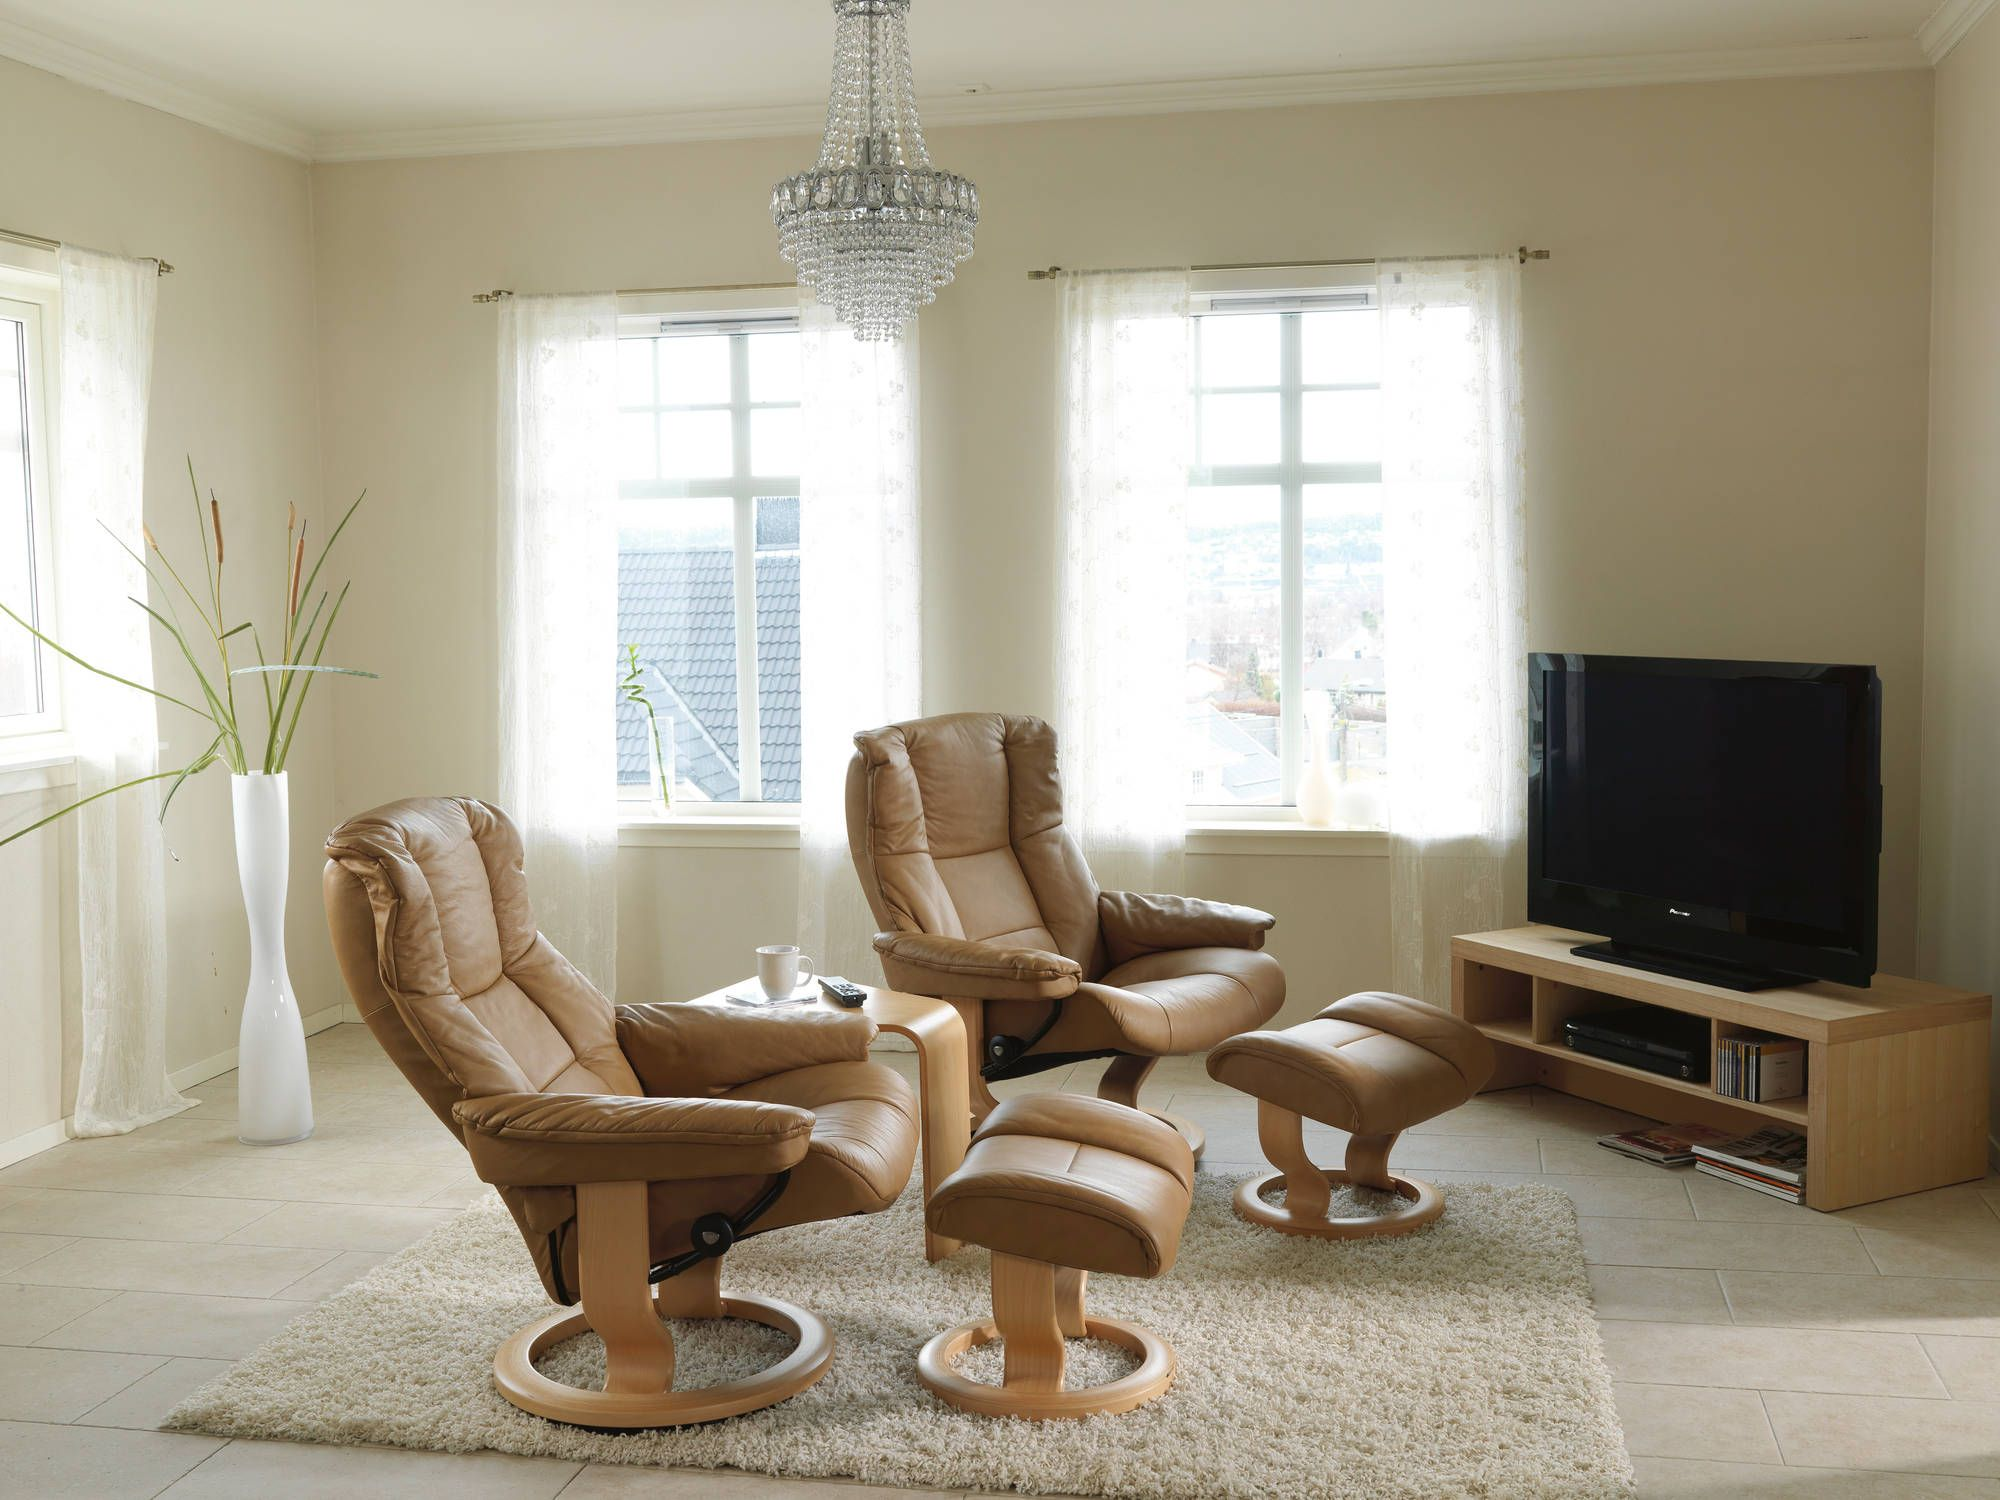 Small Sectional Sofa Stressless Recliners Mayfair Recliner Ottoman Paloma Sand u Walnut by Stressless by Ekornes at Rotmans